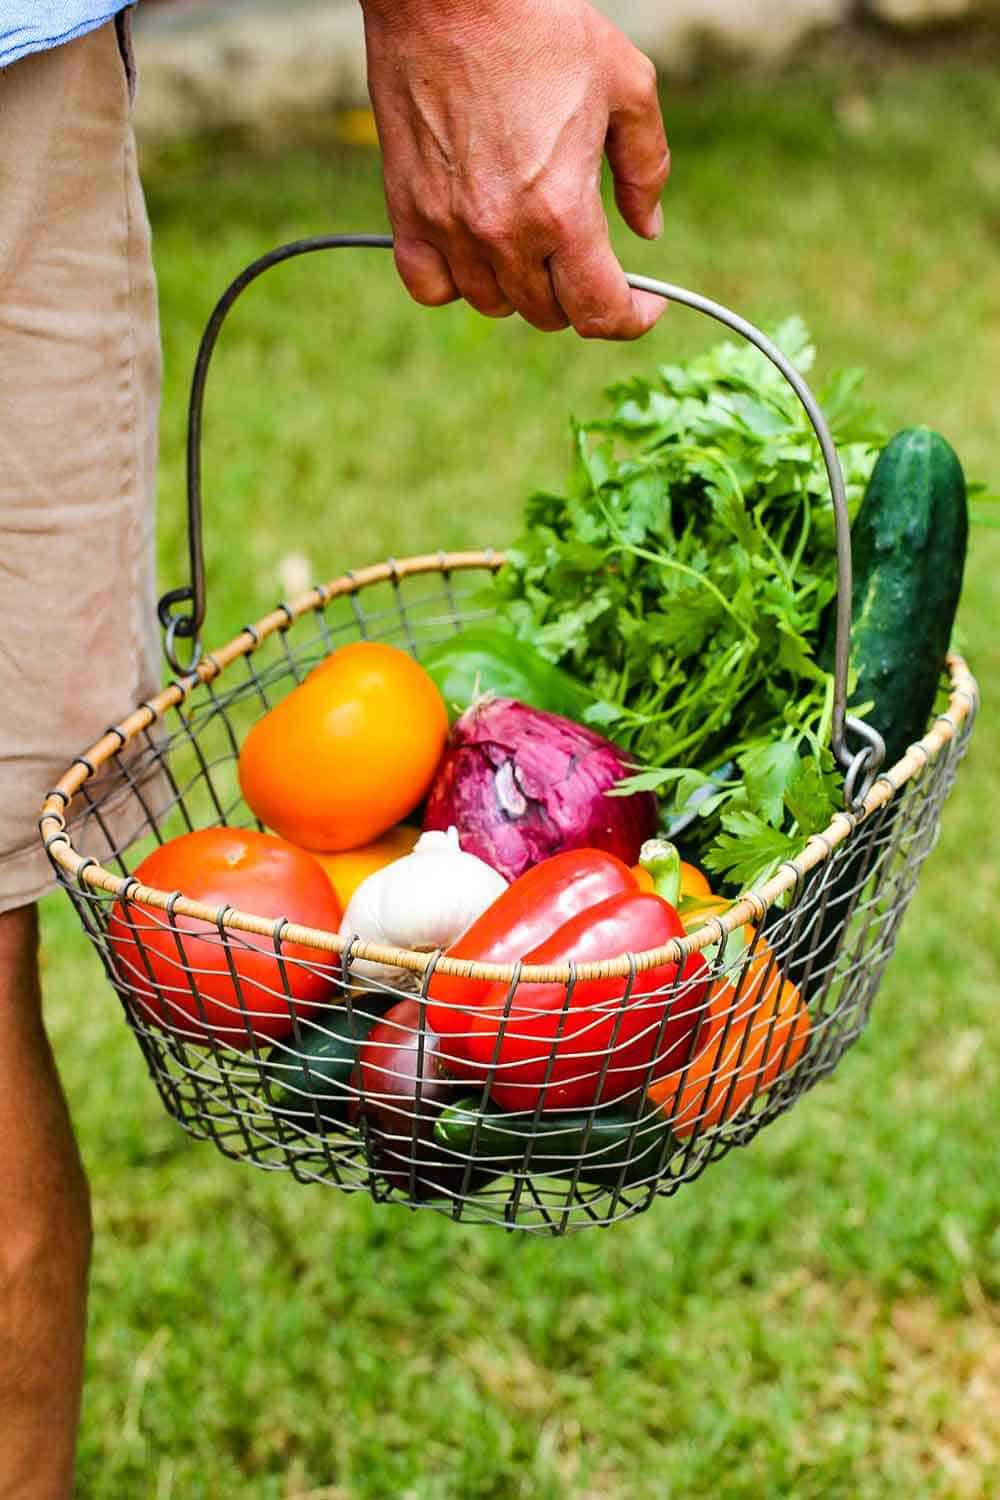 Seek out produce from a farmer's market and place in a basket.